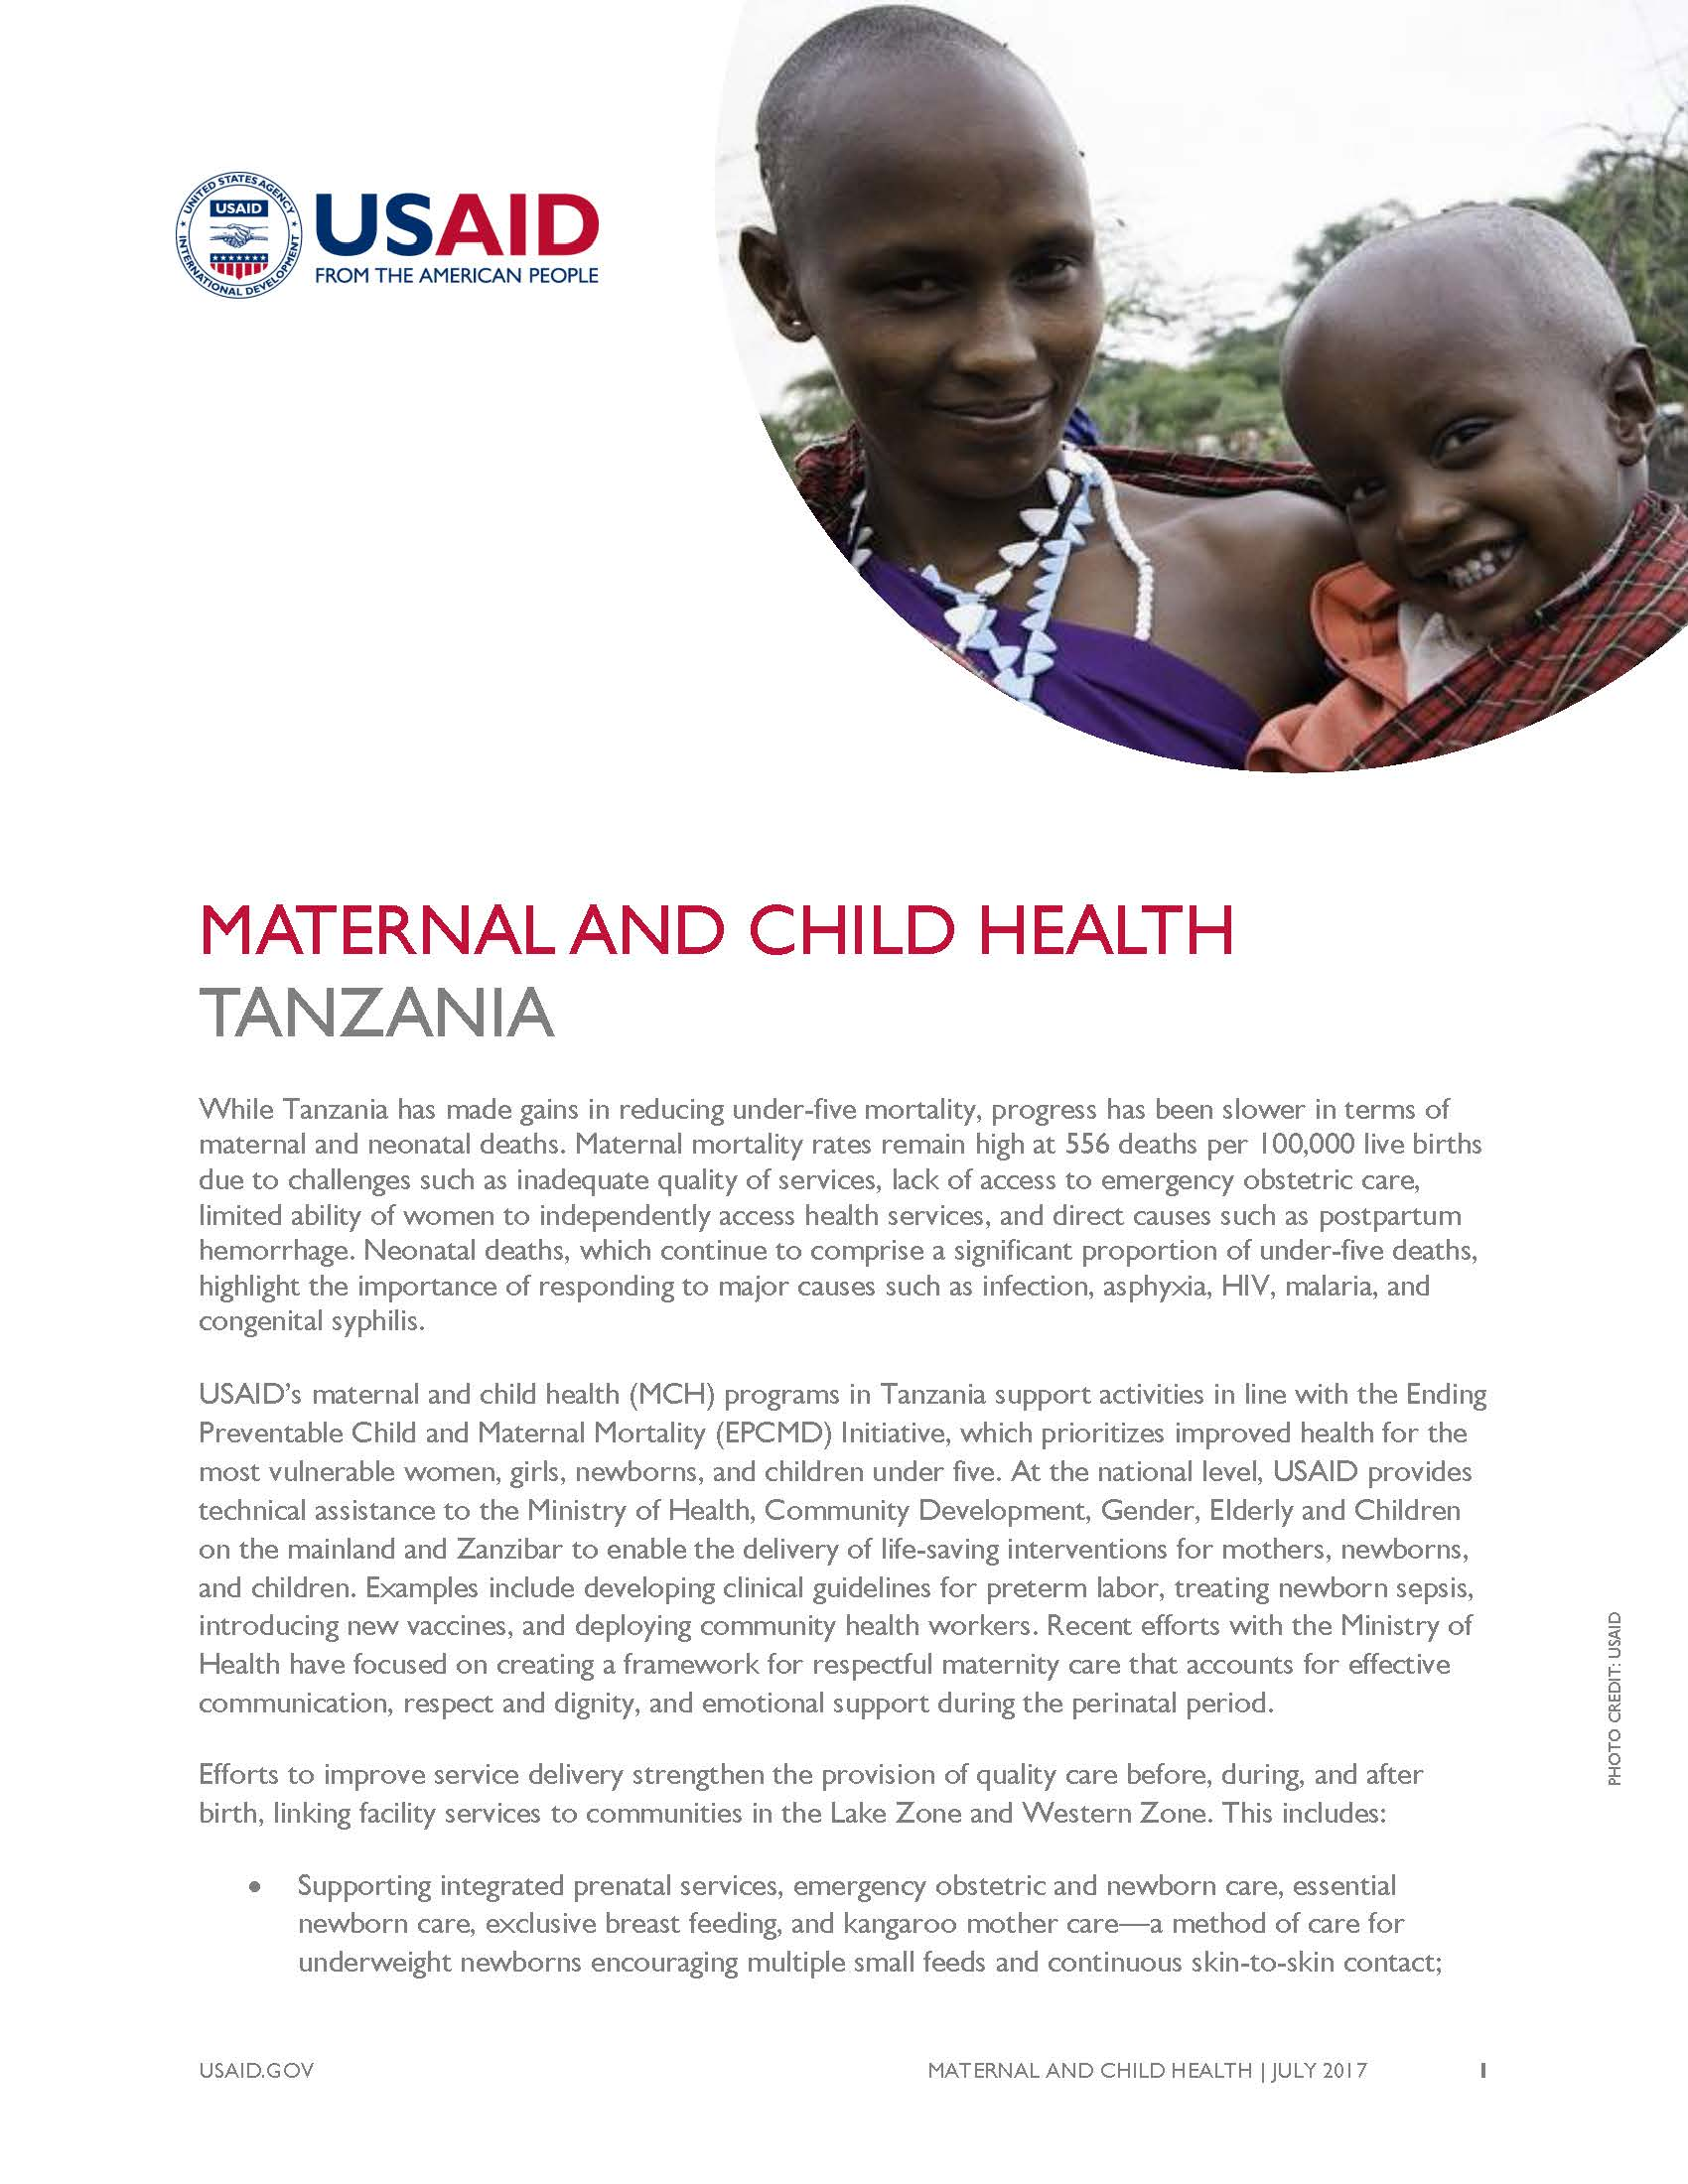 Maternal and Child Health Fact Sheet